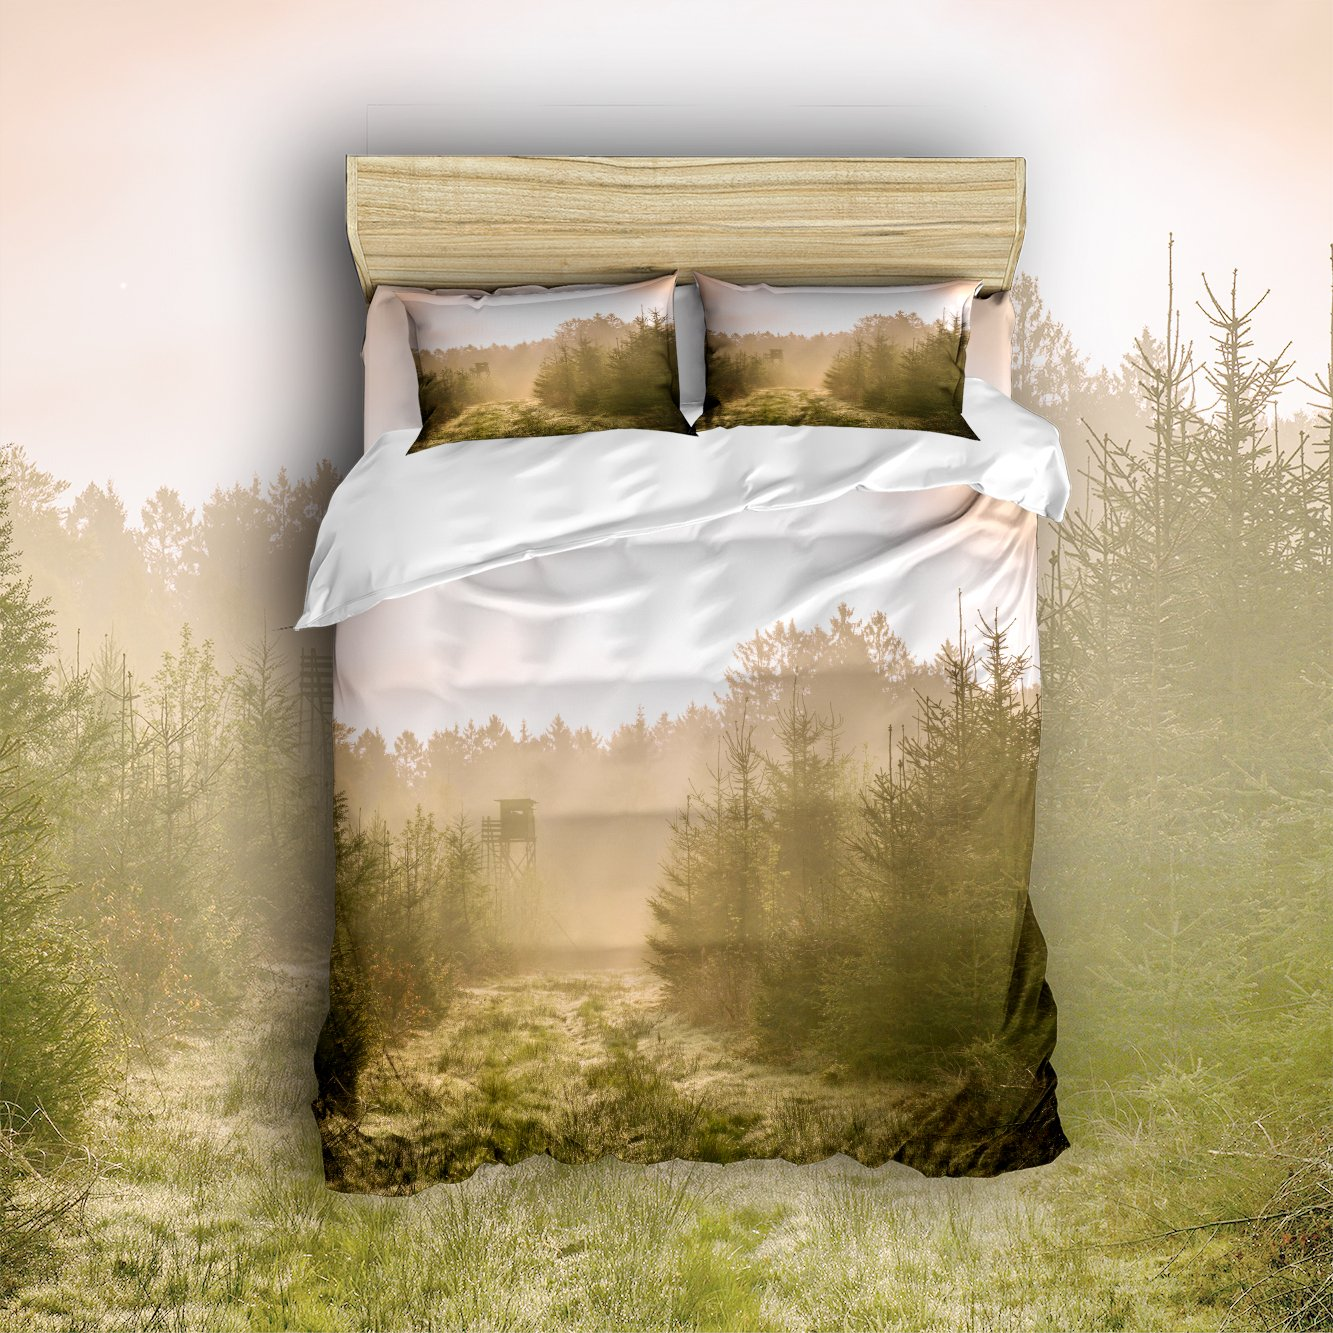 Family Decor Home Bedding Sets Country Road Shrubby Style Print Bedspread Sets For Lovely Teen Girls 4 Pcs Comforter Sets Duvet Cover, Flat Sheet, Shams Set 4Pieces